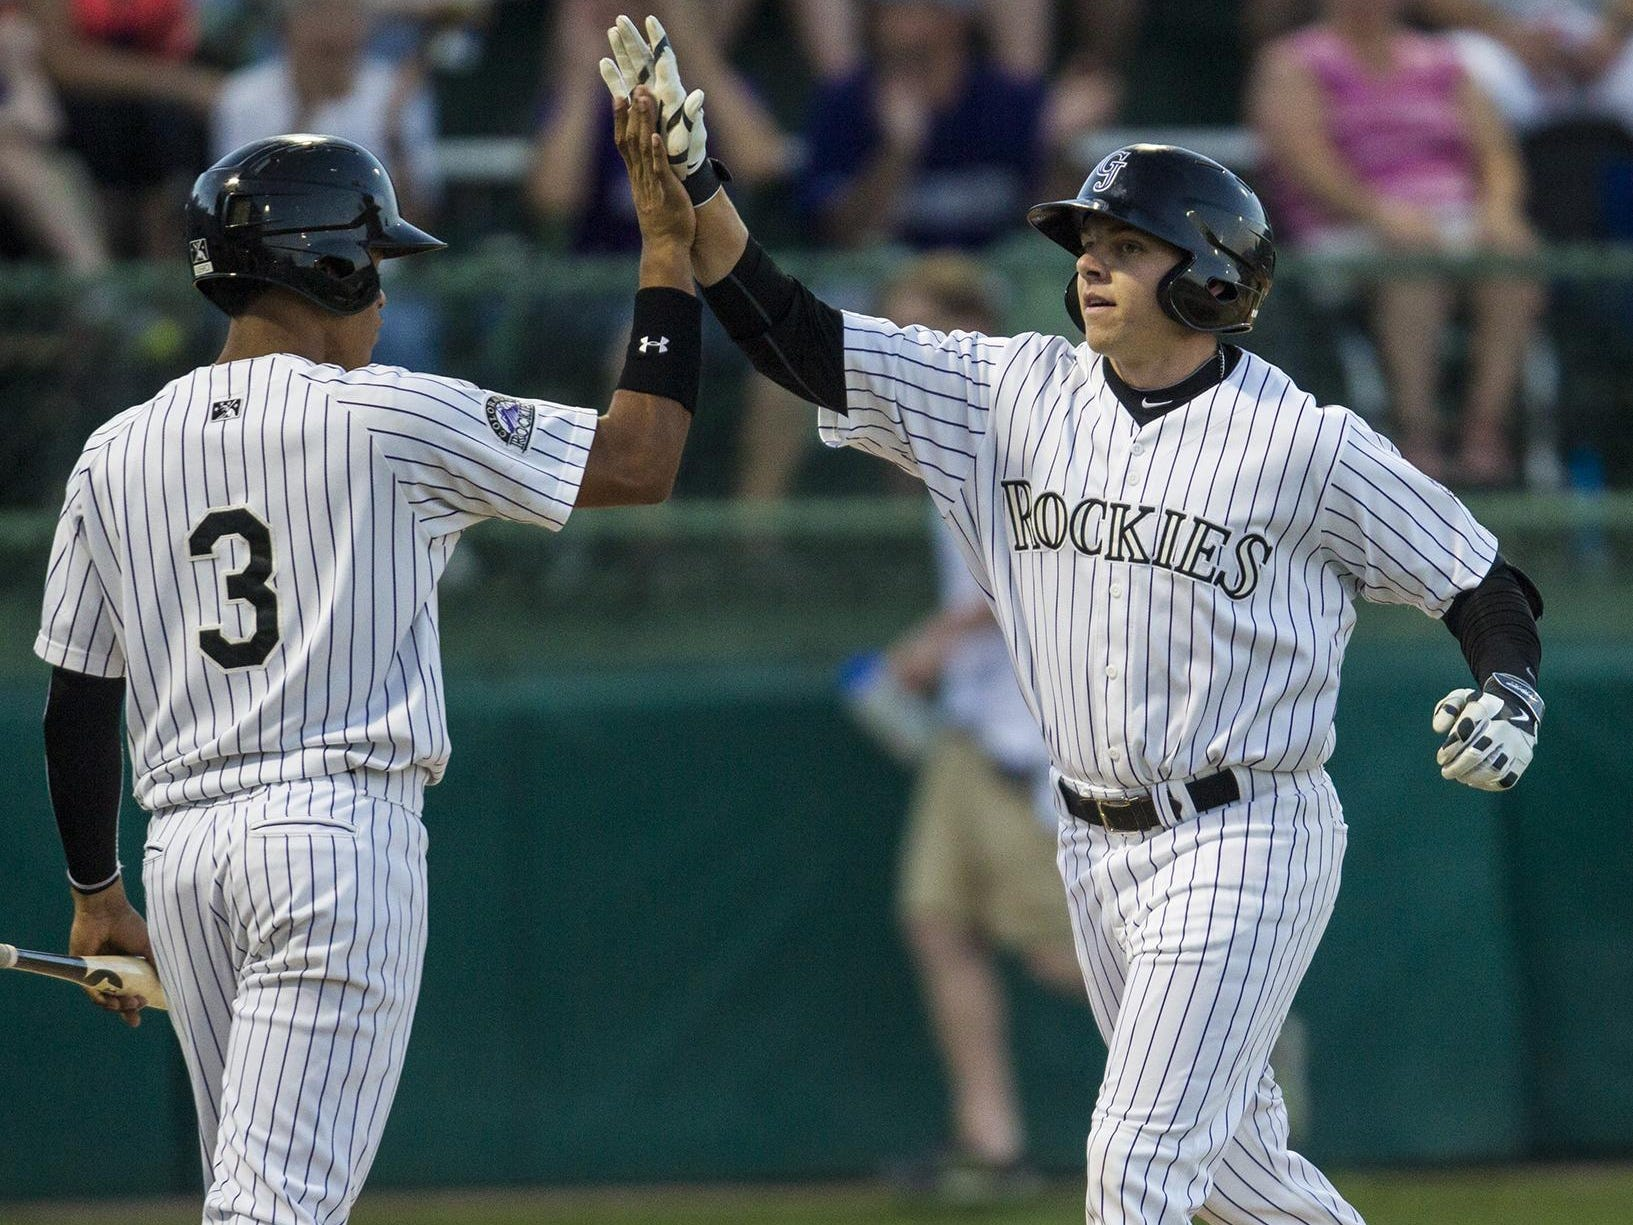 Rocky Mountain High School grad Cole Anderson, right, celebrates his first career hit, a home run, during the Grand Junction Rockies home opener Monday.